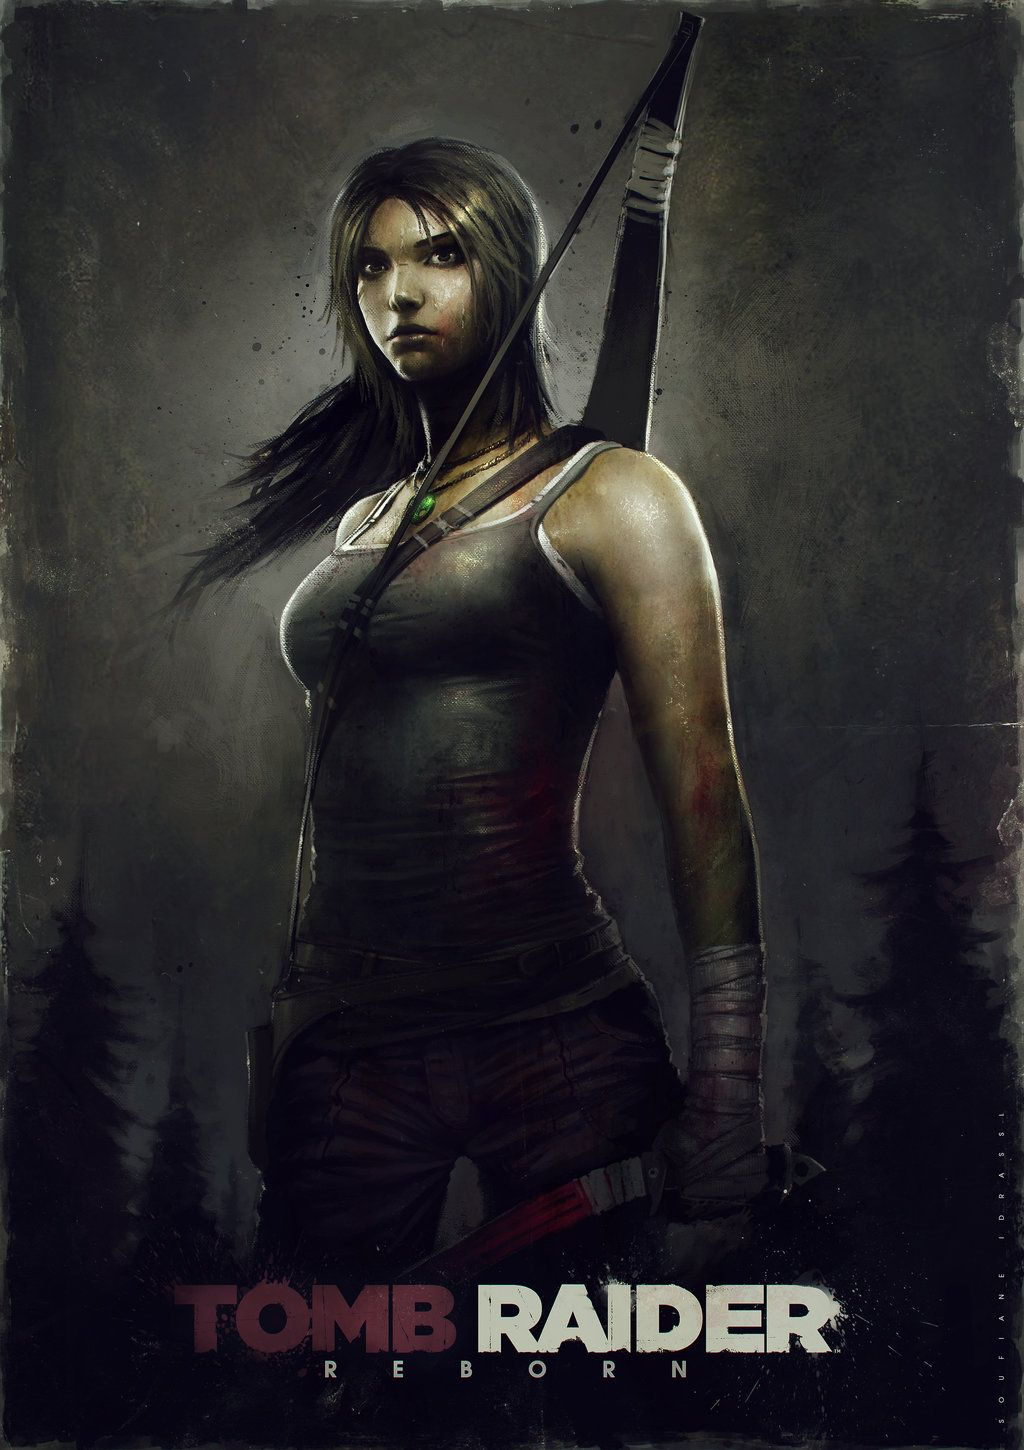 Tomb Raider Reborn tombraider raider tomb laracroft